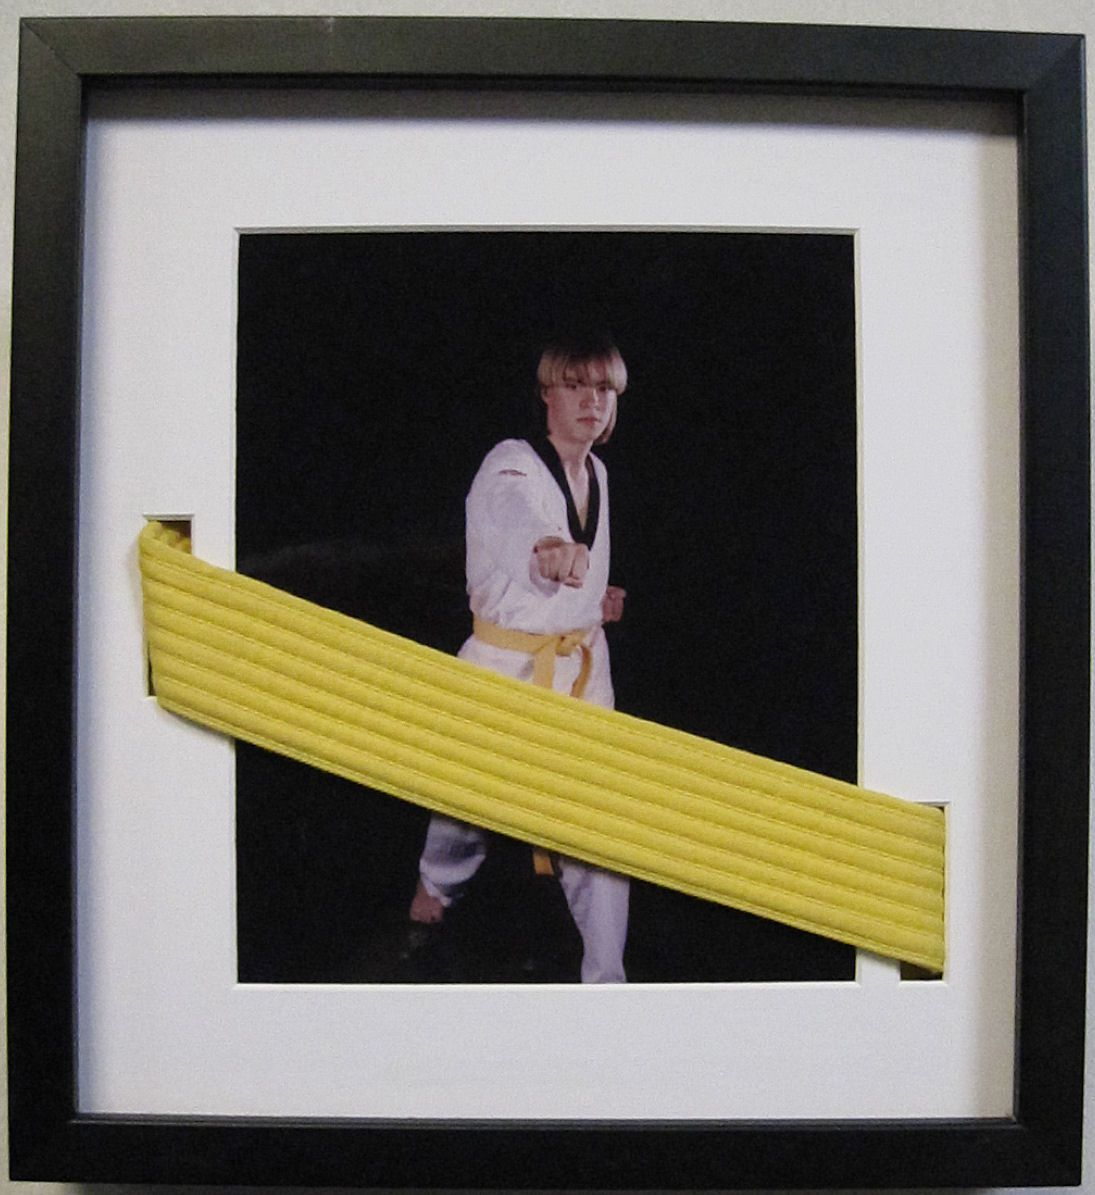 Karate belt display ideas - We Ve Never Seen A Karate Belt Incorporated Into A Custom Frame Quite Like This